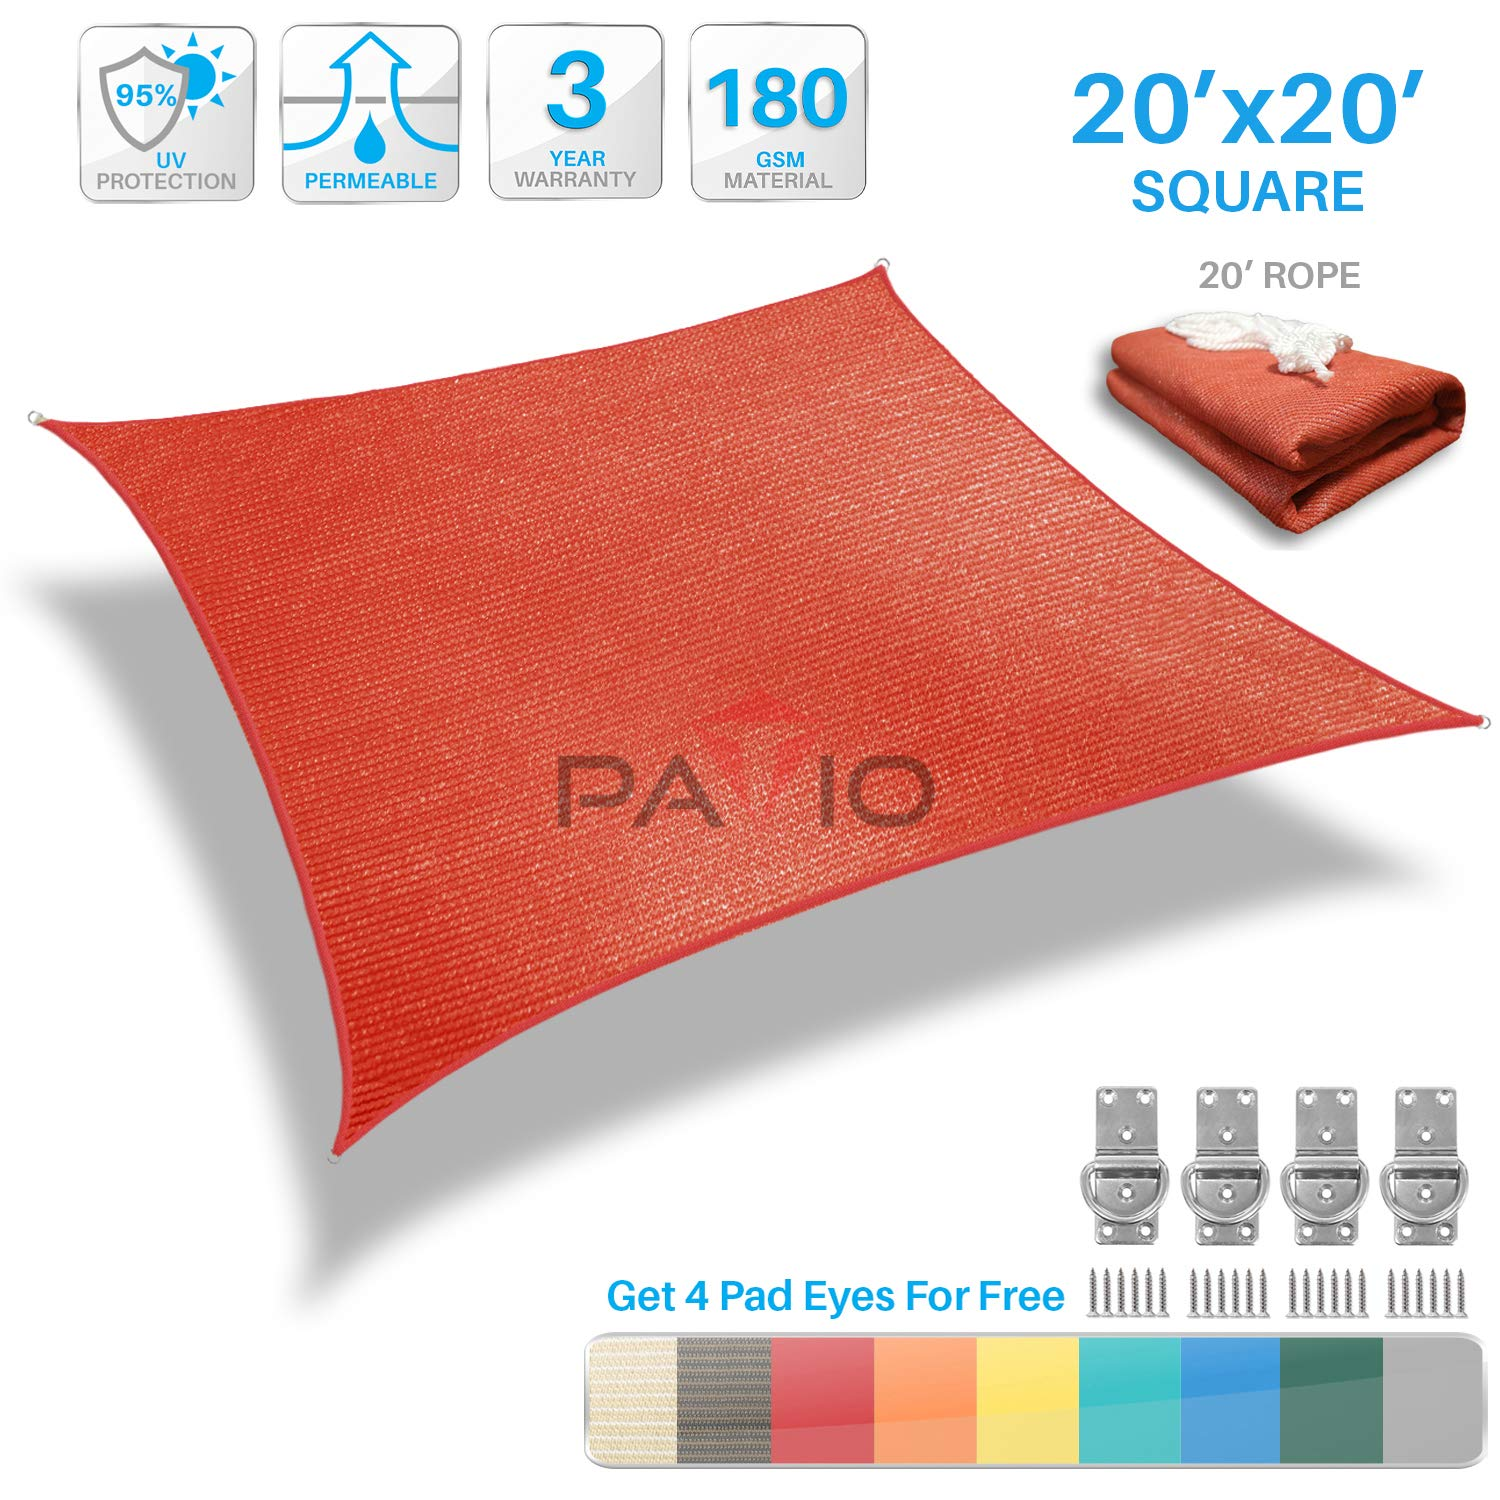 Patio Paradise 20' x 20' Red Sun Shade Sail Square Canopy - Permeable UV Block Fabric Durable Outdoor - Customized Available